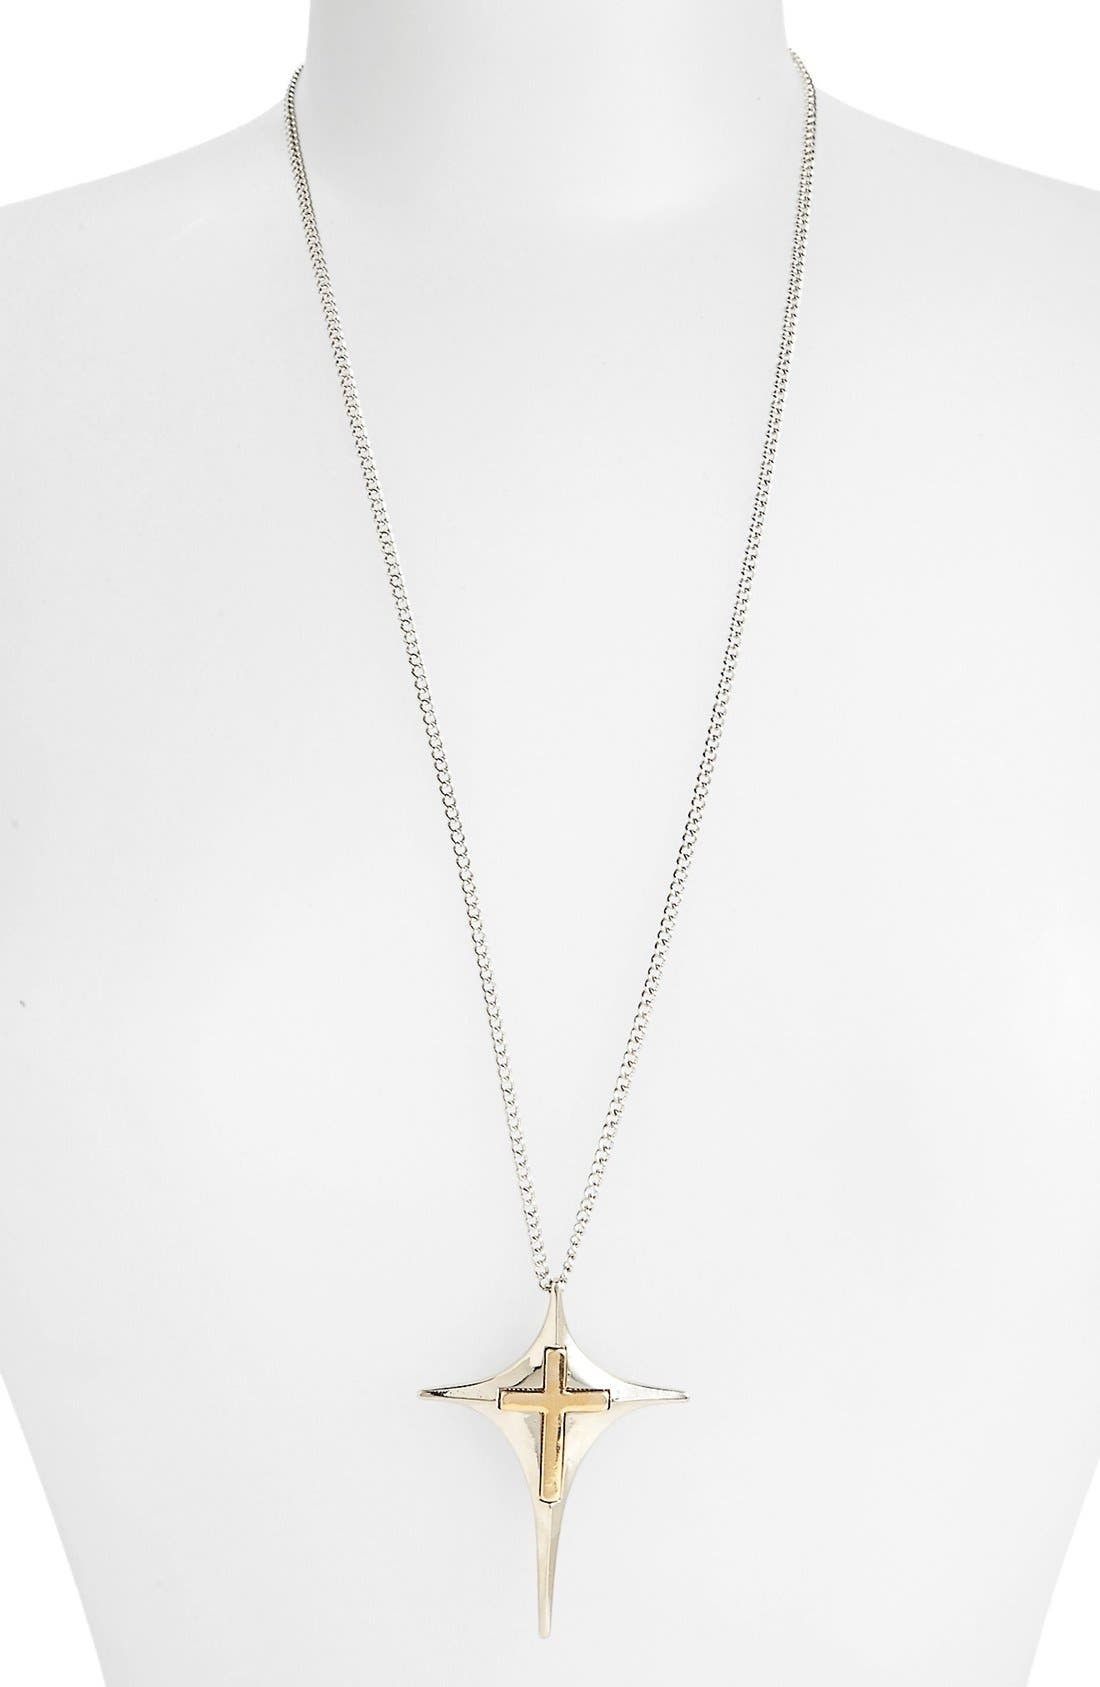 Main Image - Topshop Kite & Cross Pendant Necklace